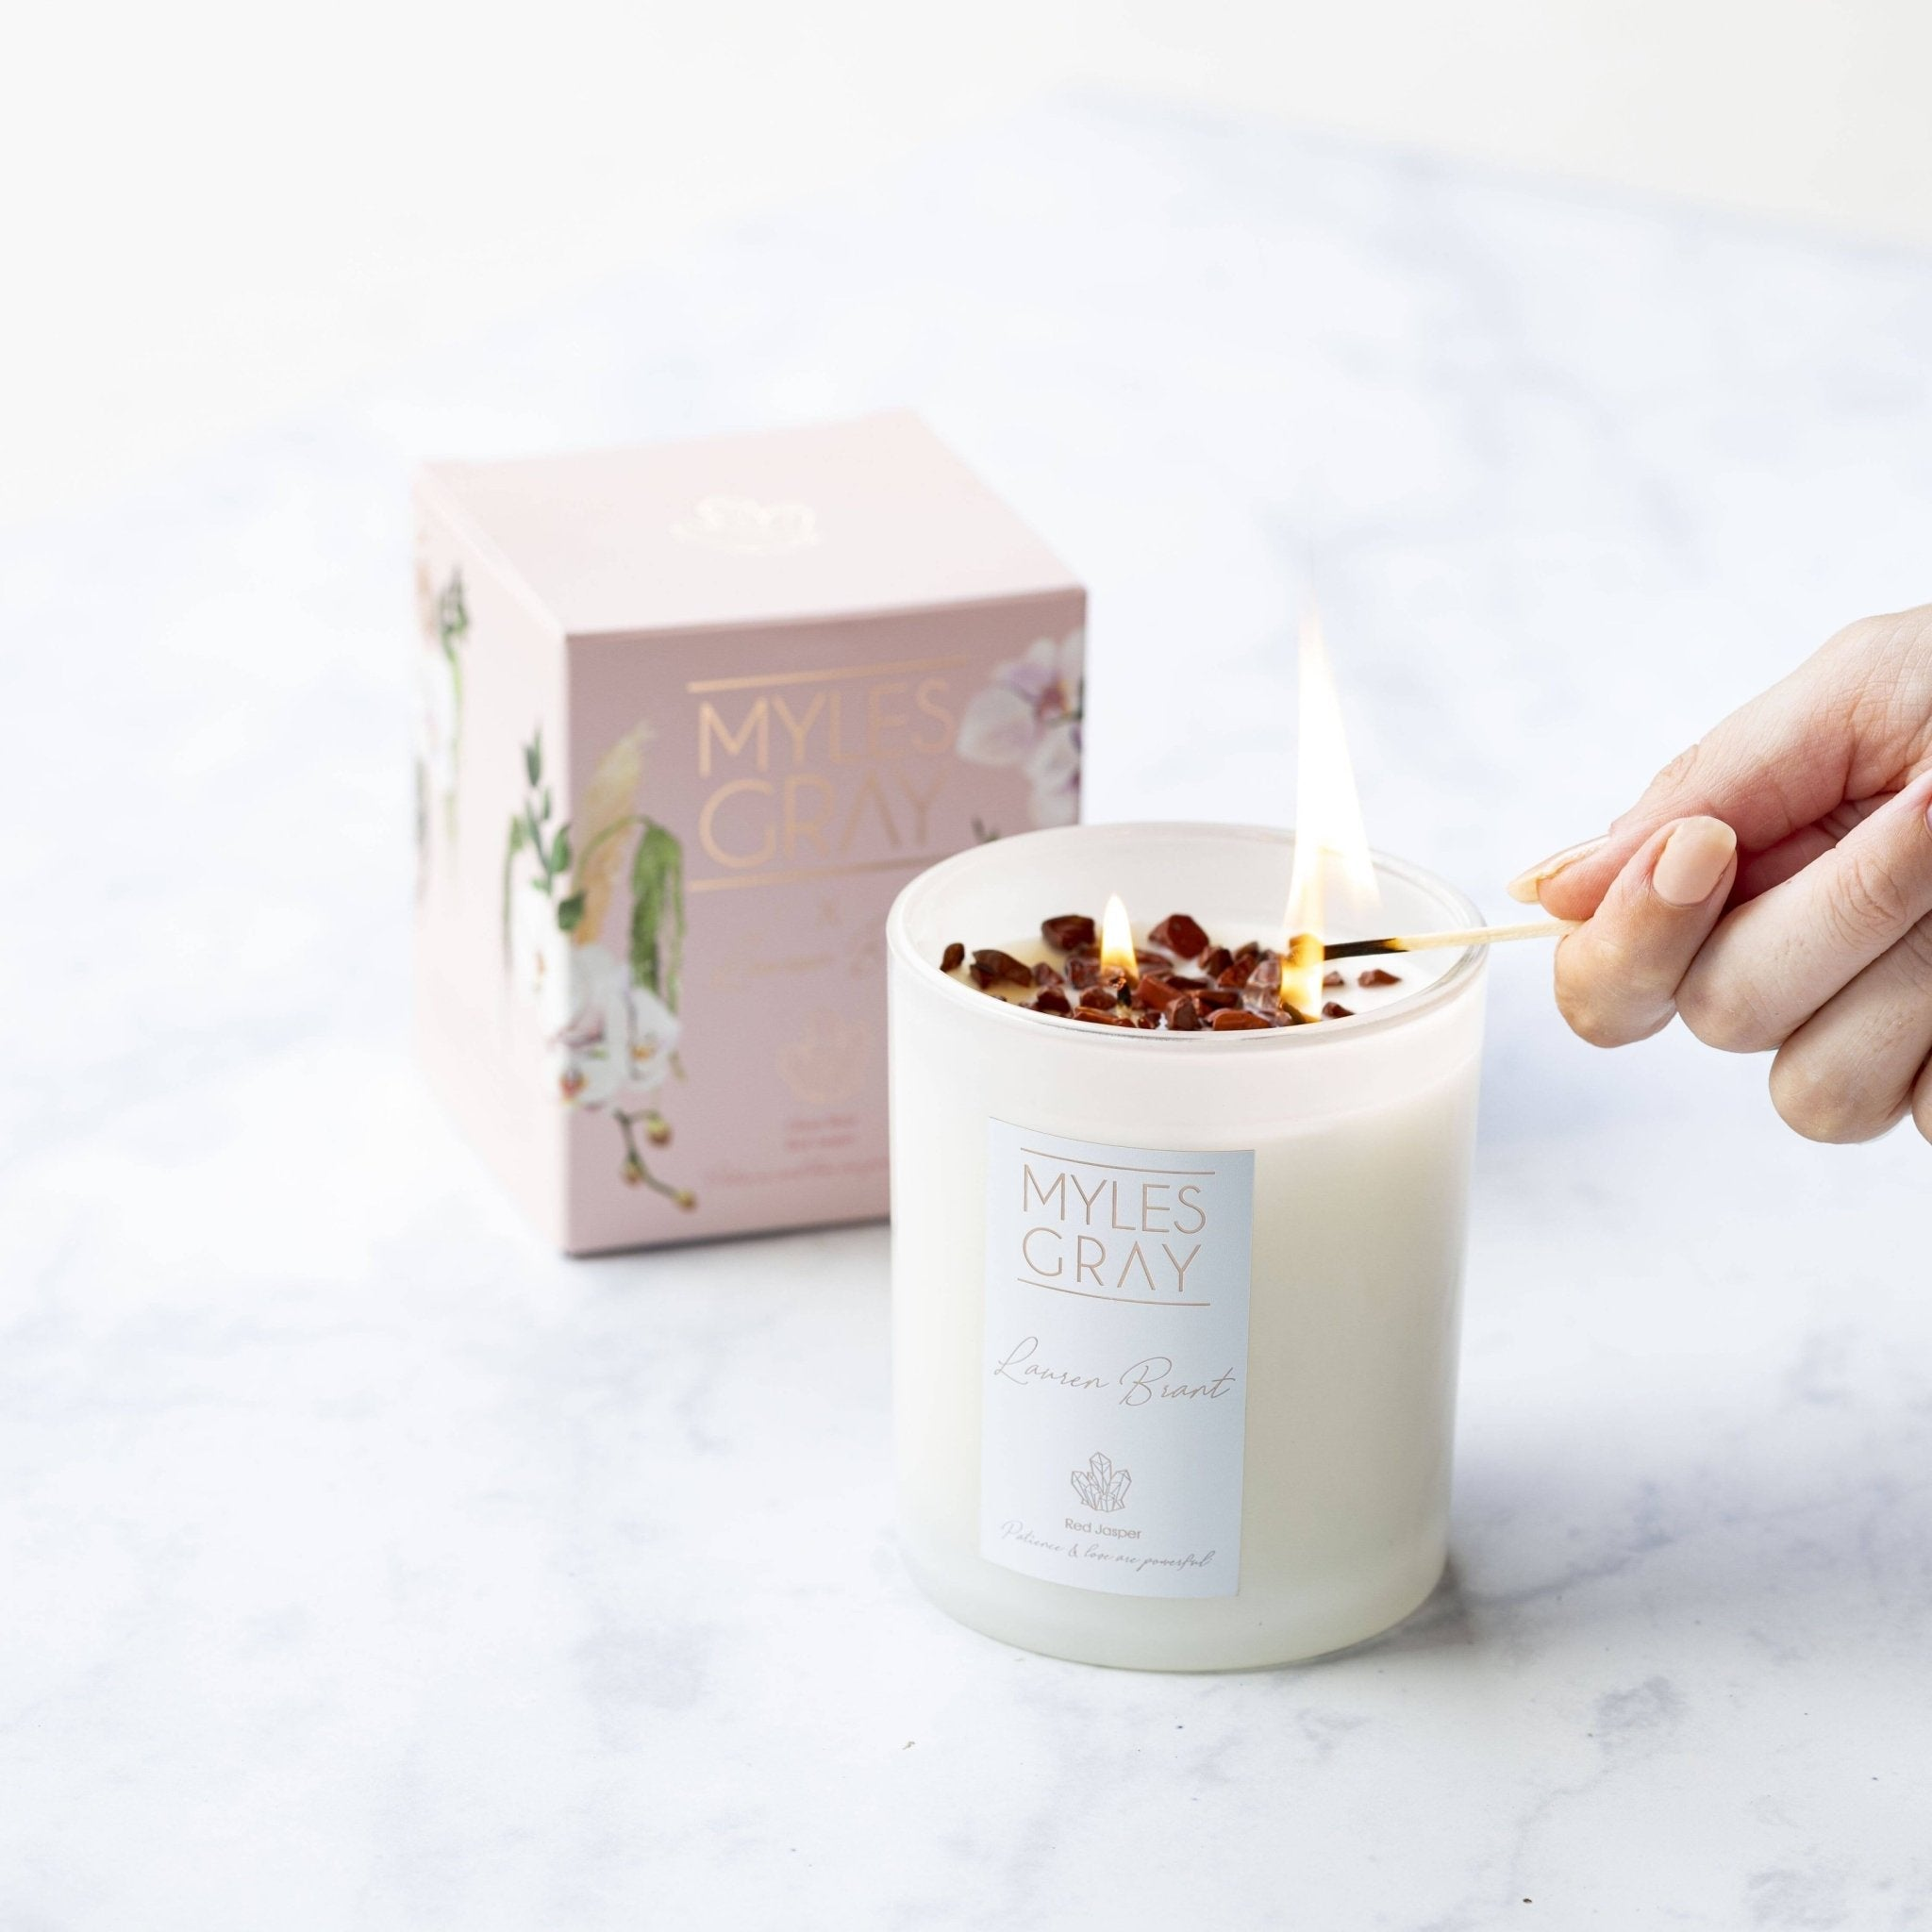 Myles Gray X Lauren Brant Collab Candle - Myles Gray